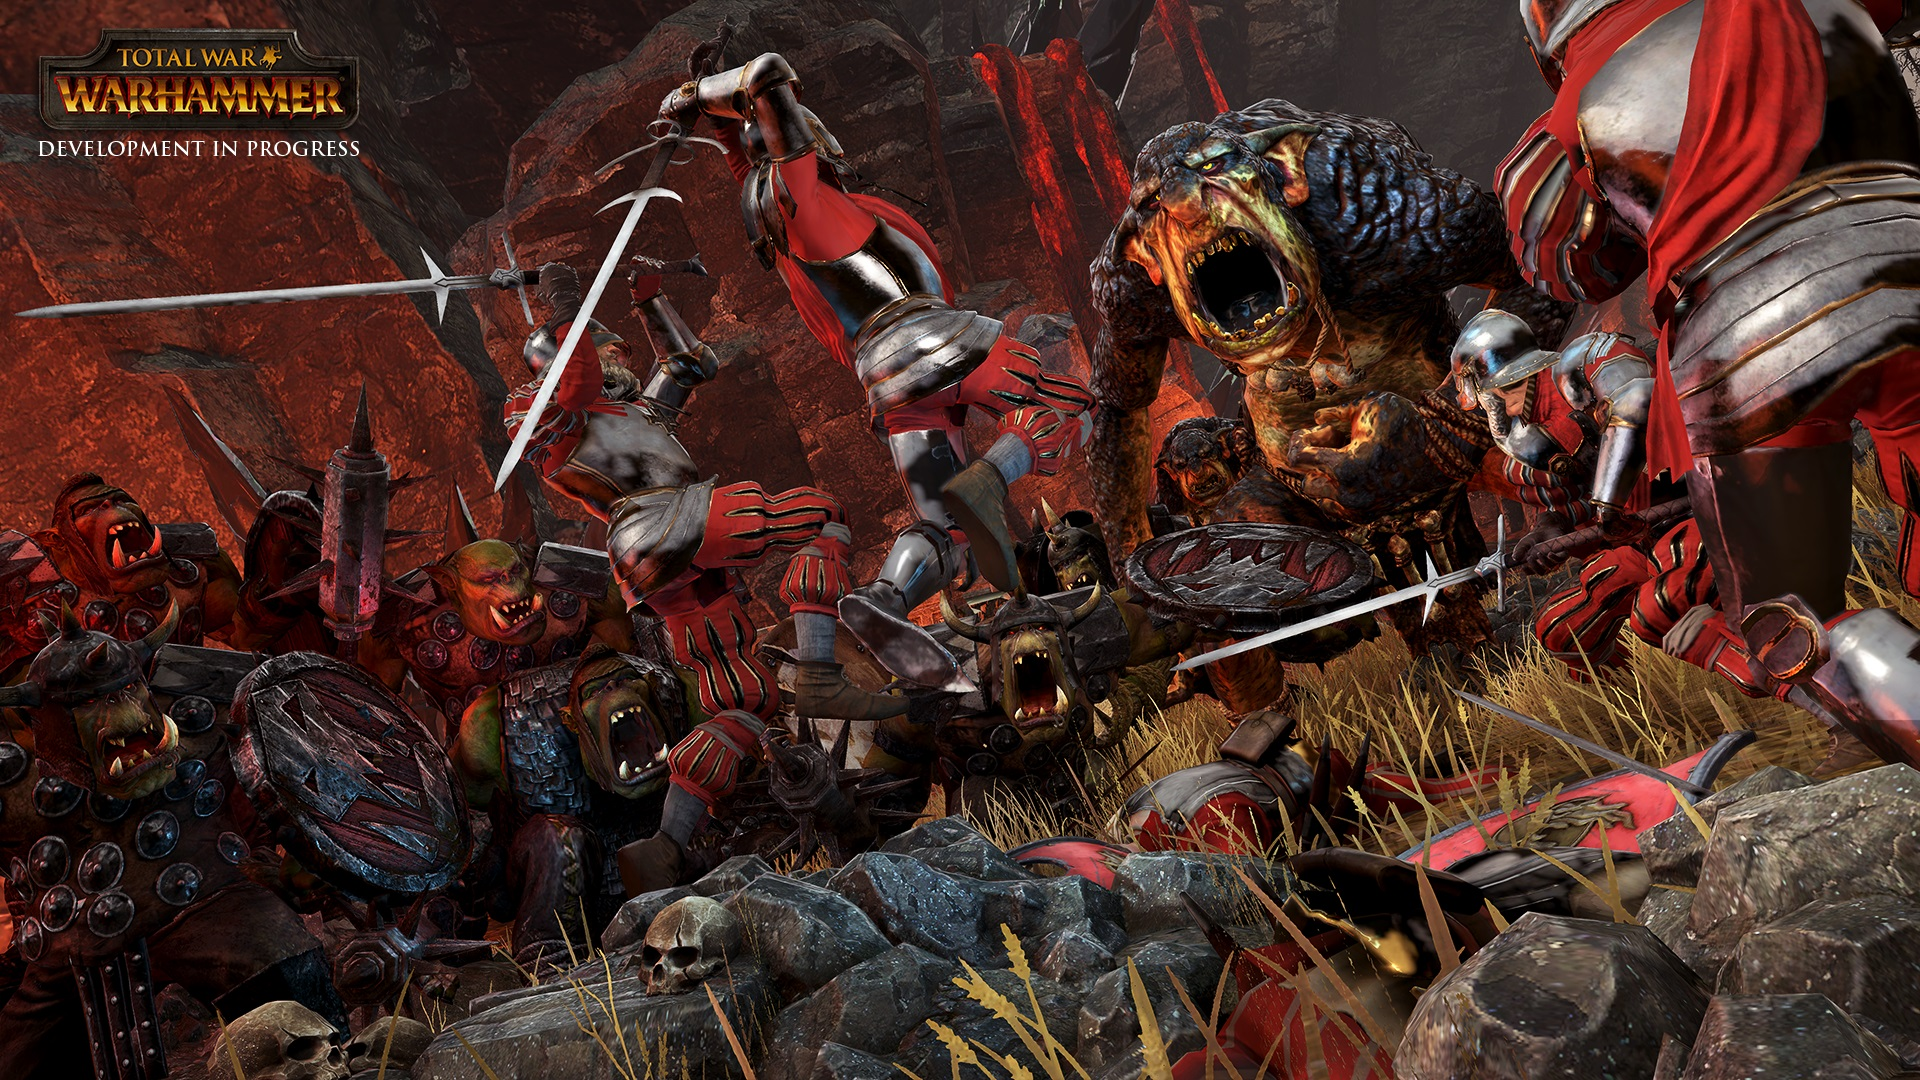 Total War: Warhammer Widescreen for desktop